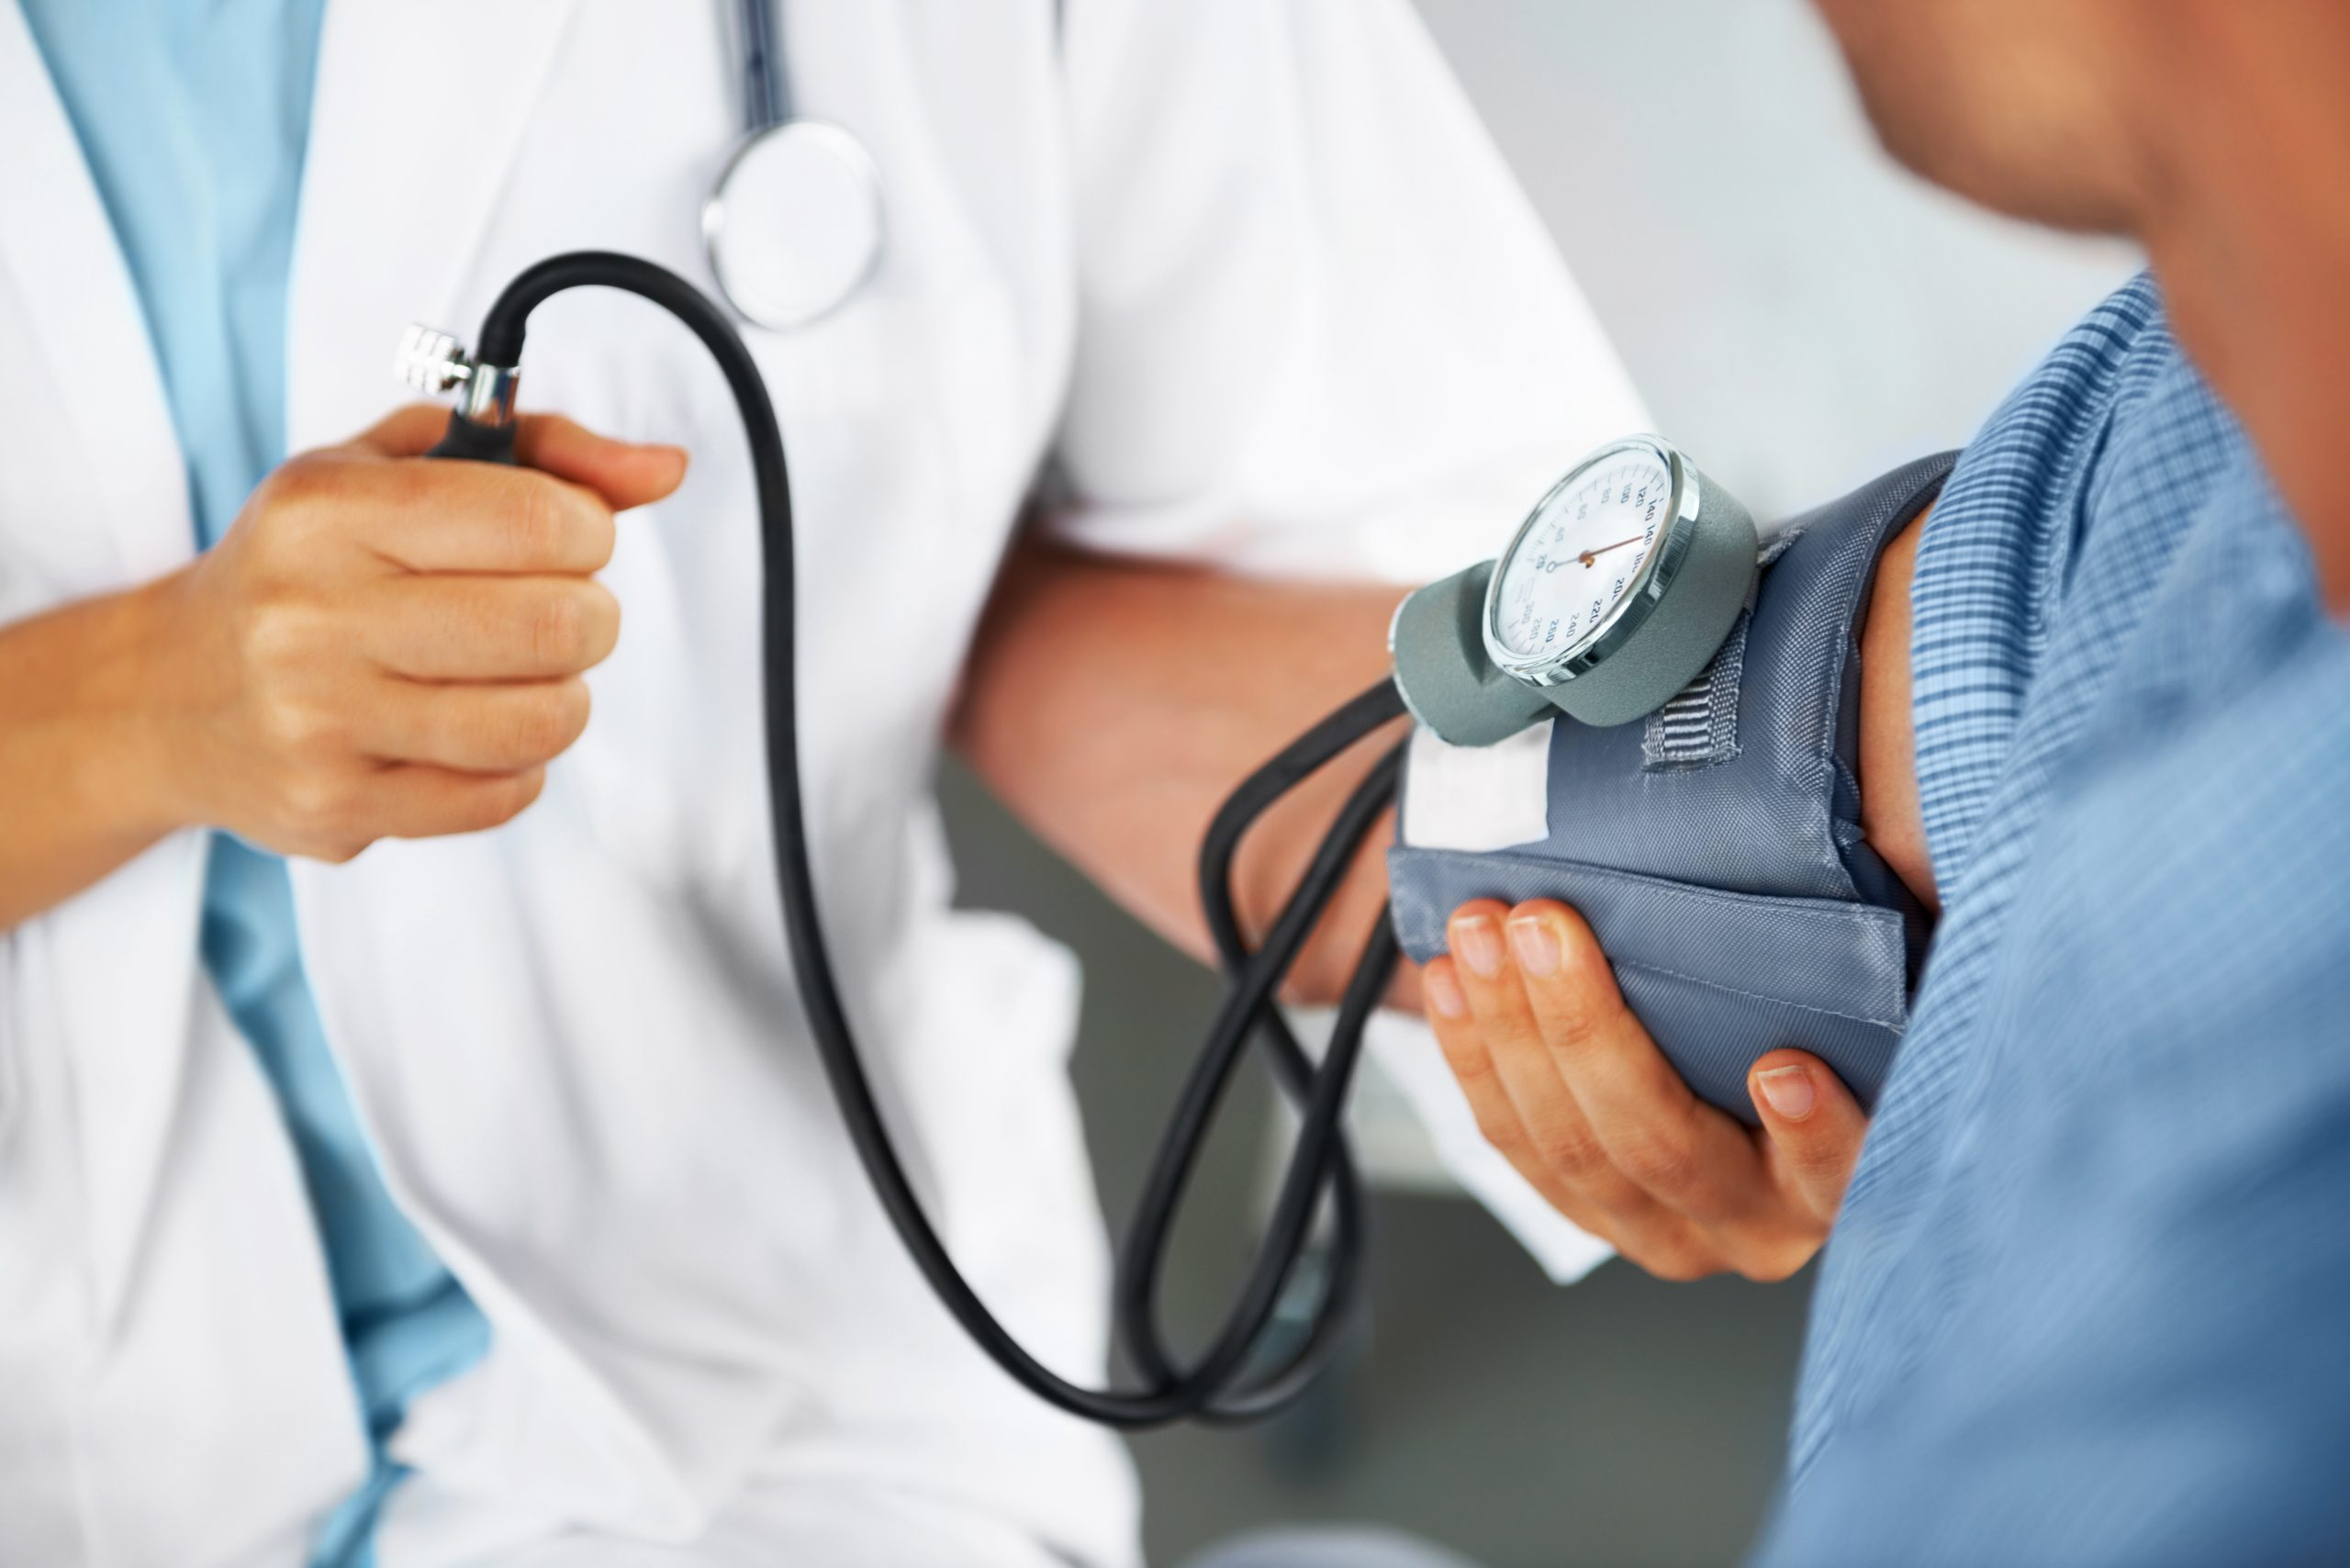 Ideal Blood Pressure Range and Glaucoma